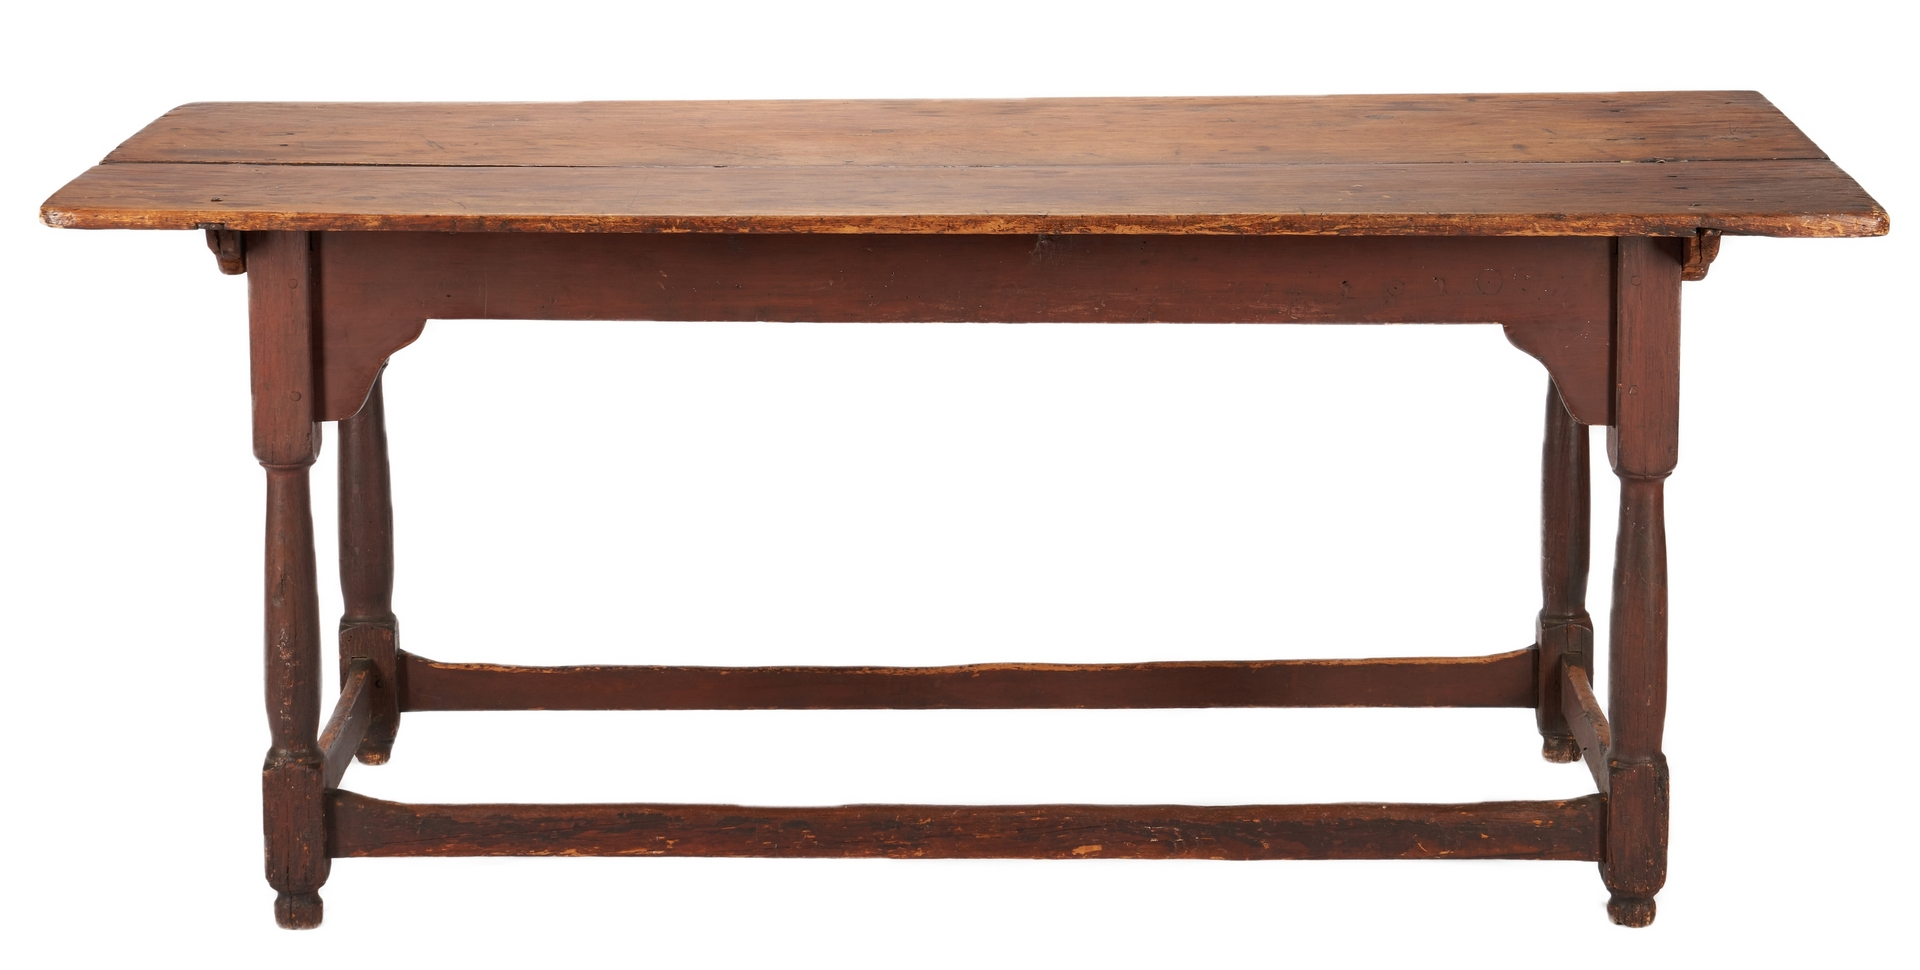 Lot 232: William and Mary Mid-Atlantic Stretcher Base Table